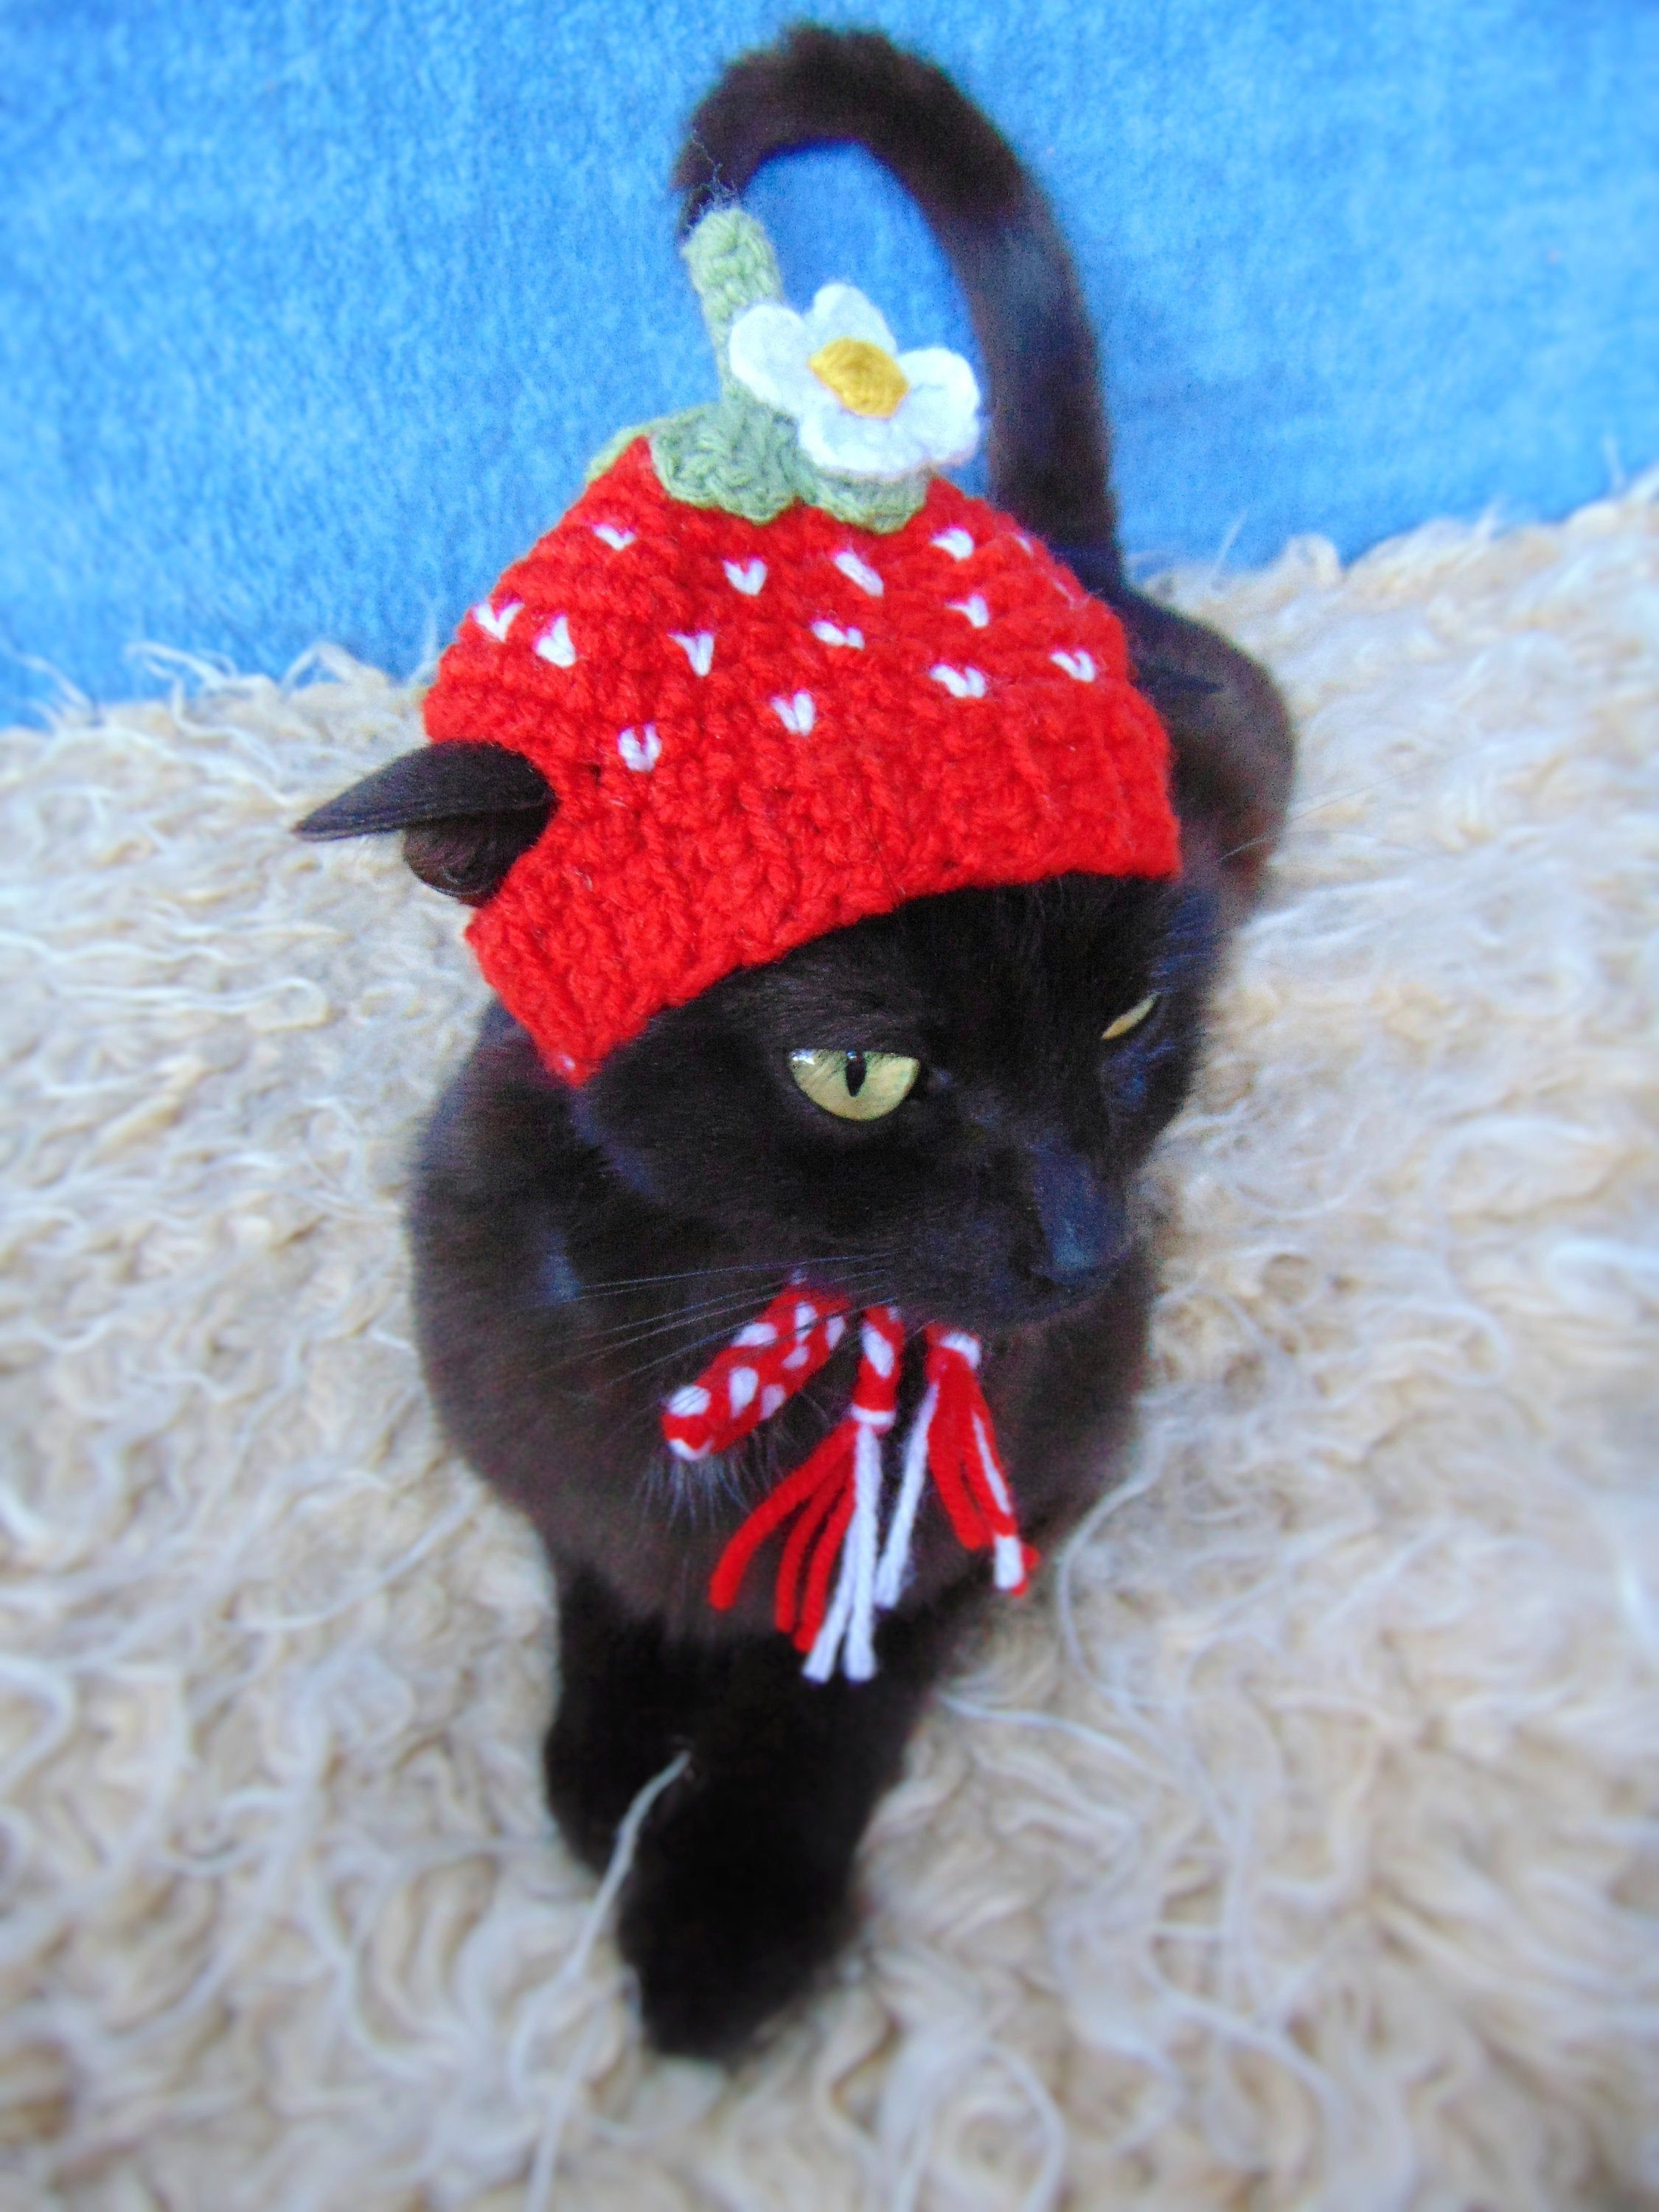 Strawberry Hat For Cat Hat For Kitten Fruit Cat Outfit Etsy Pet Halloween Costumes Cat Clothes Pet Costumes Cat